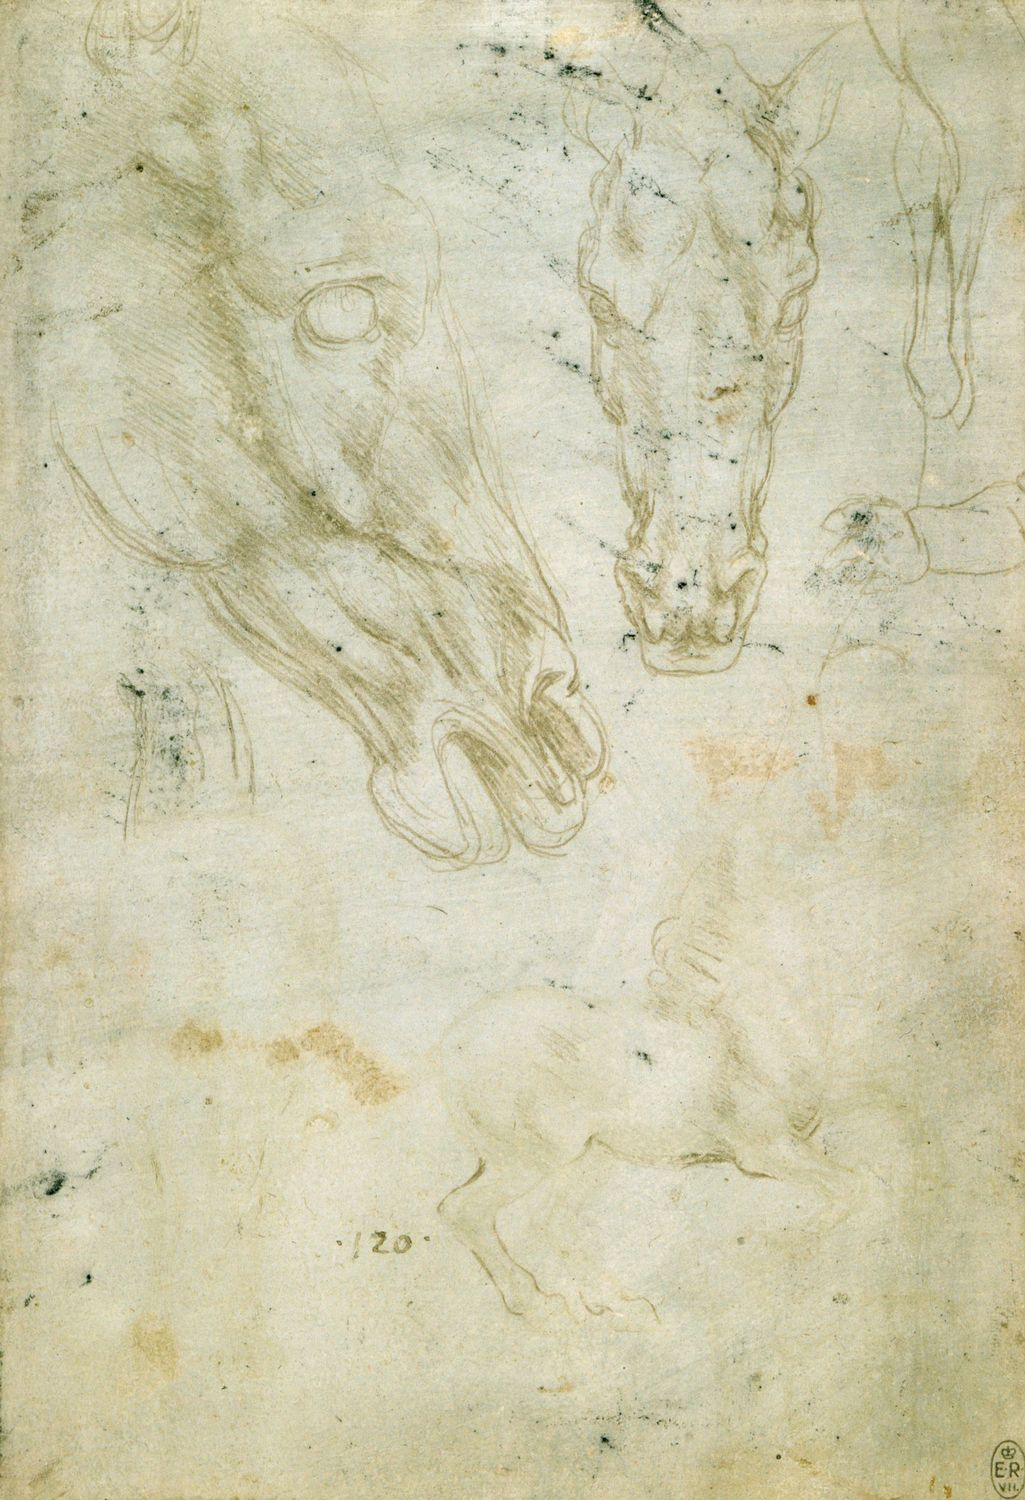 Leonardo da Vinci - Drawings - Animals - Horse Drawings.jpg